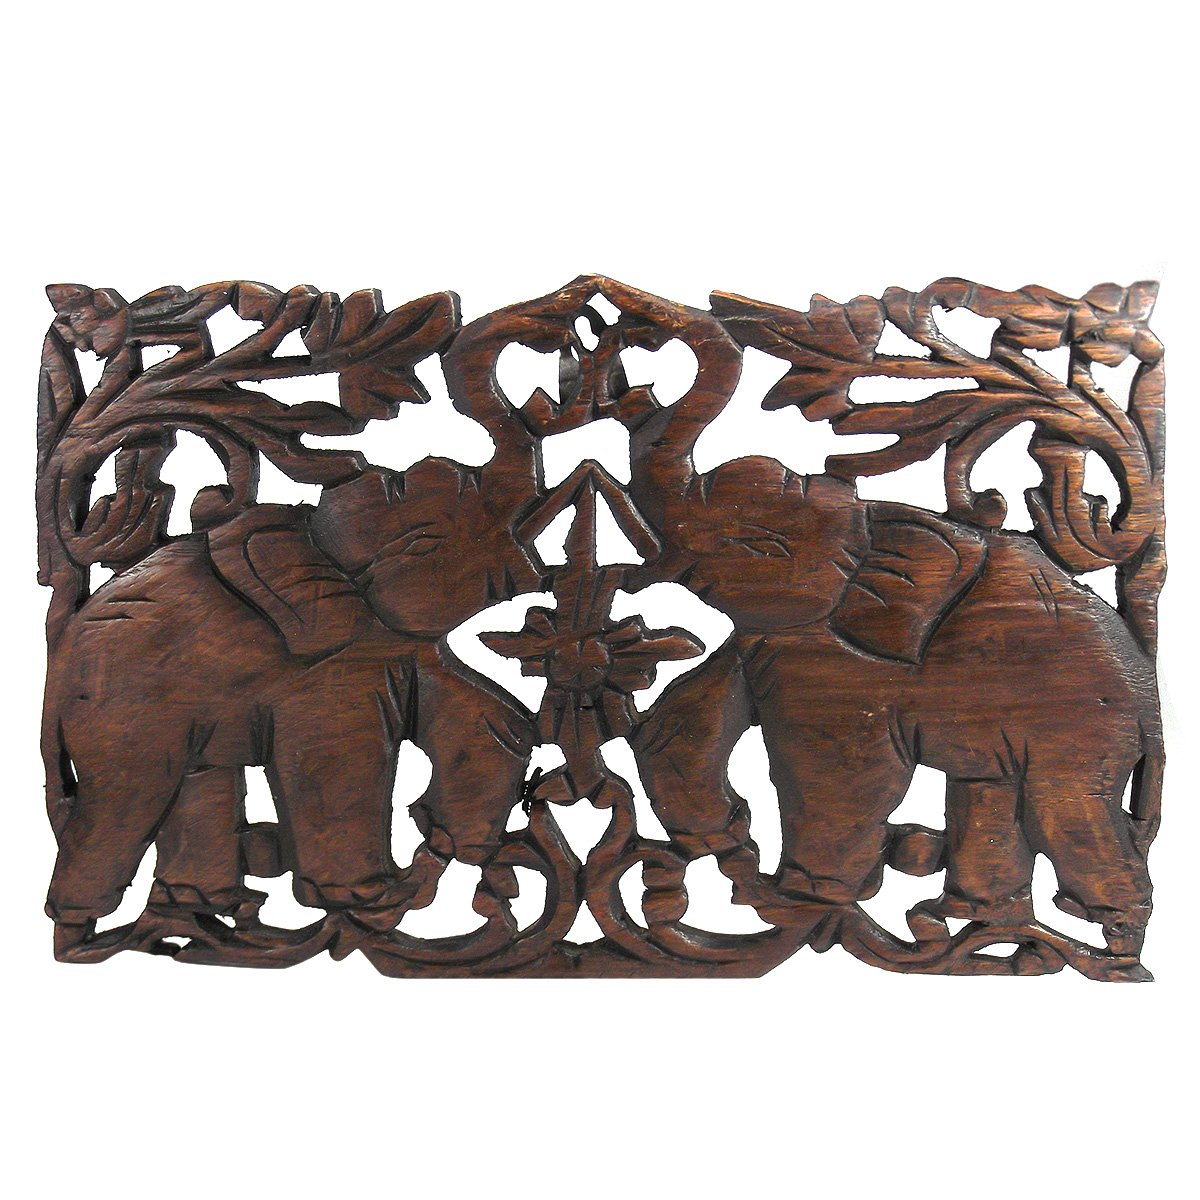 Jubilant Thai Elephant Duo Hand Carved Teak Wood Wall Art Relief Panel - Fair Trade Handicraft by Thai Artisans by AeraVida